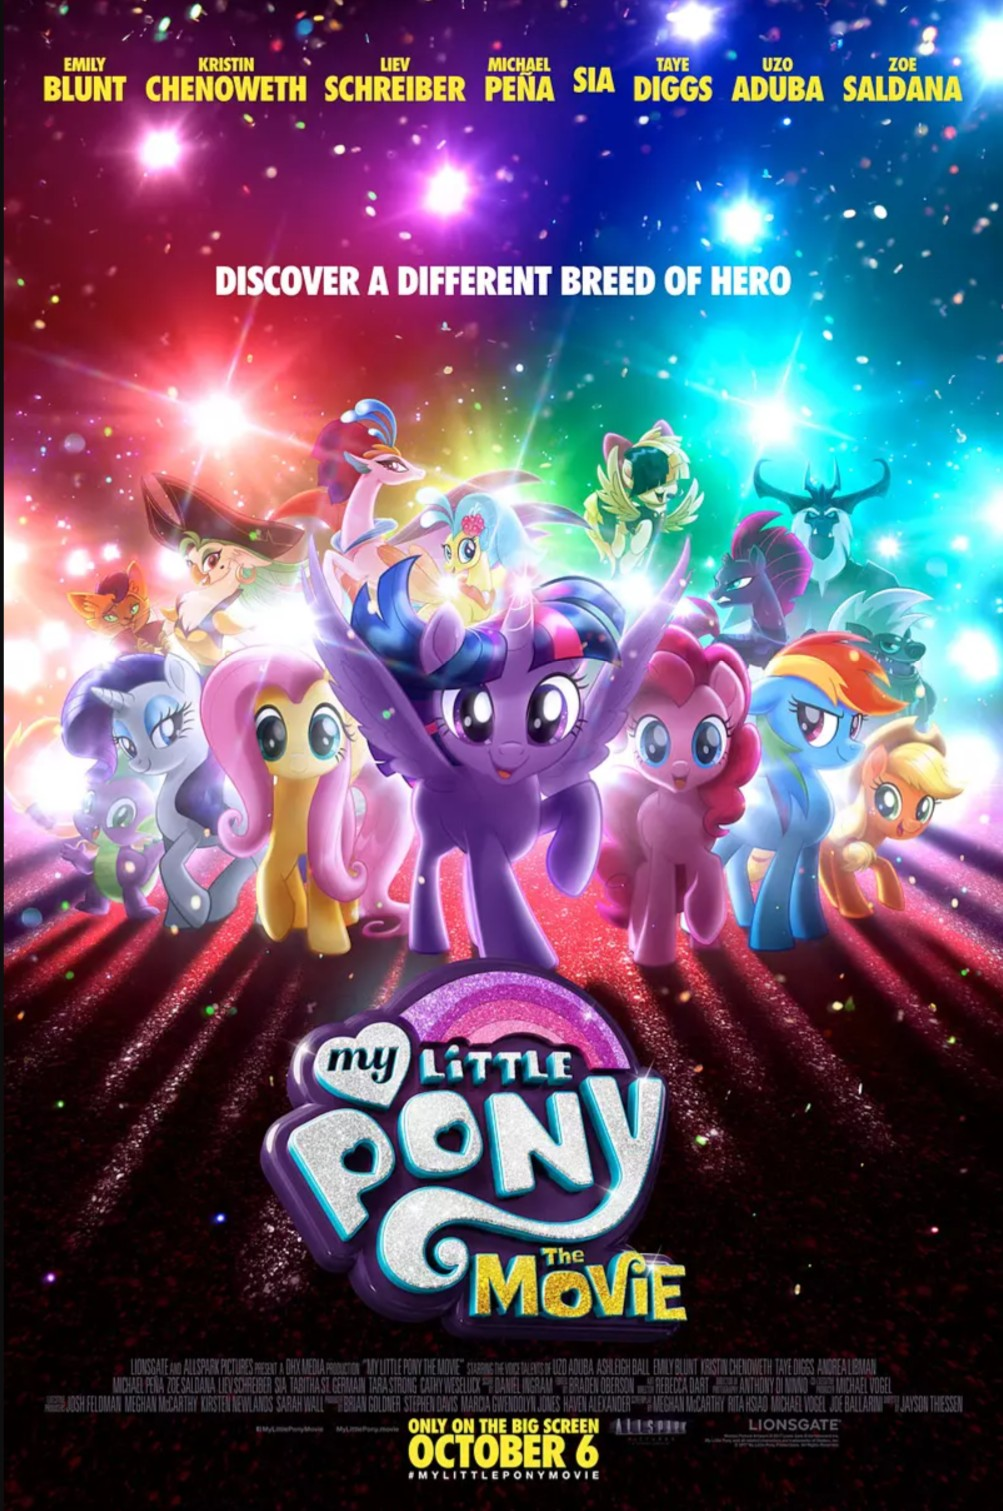 My Little Pony: The Movie 小马宝莉大电影